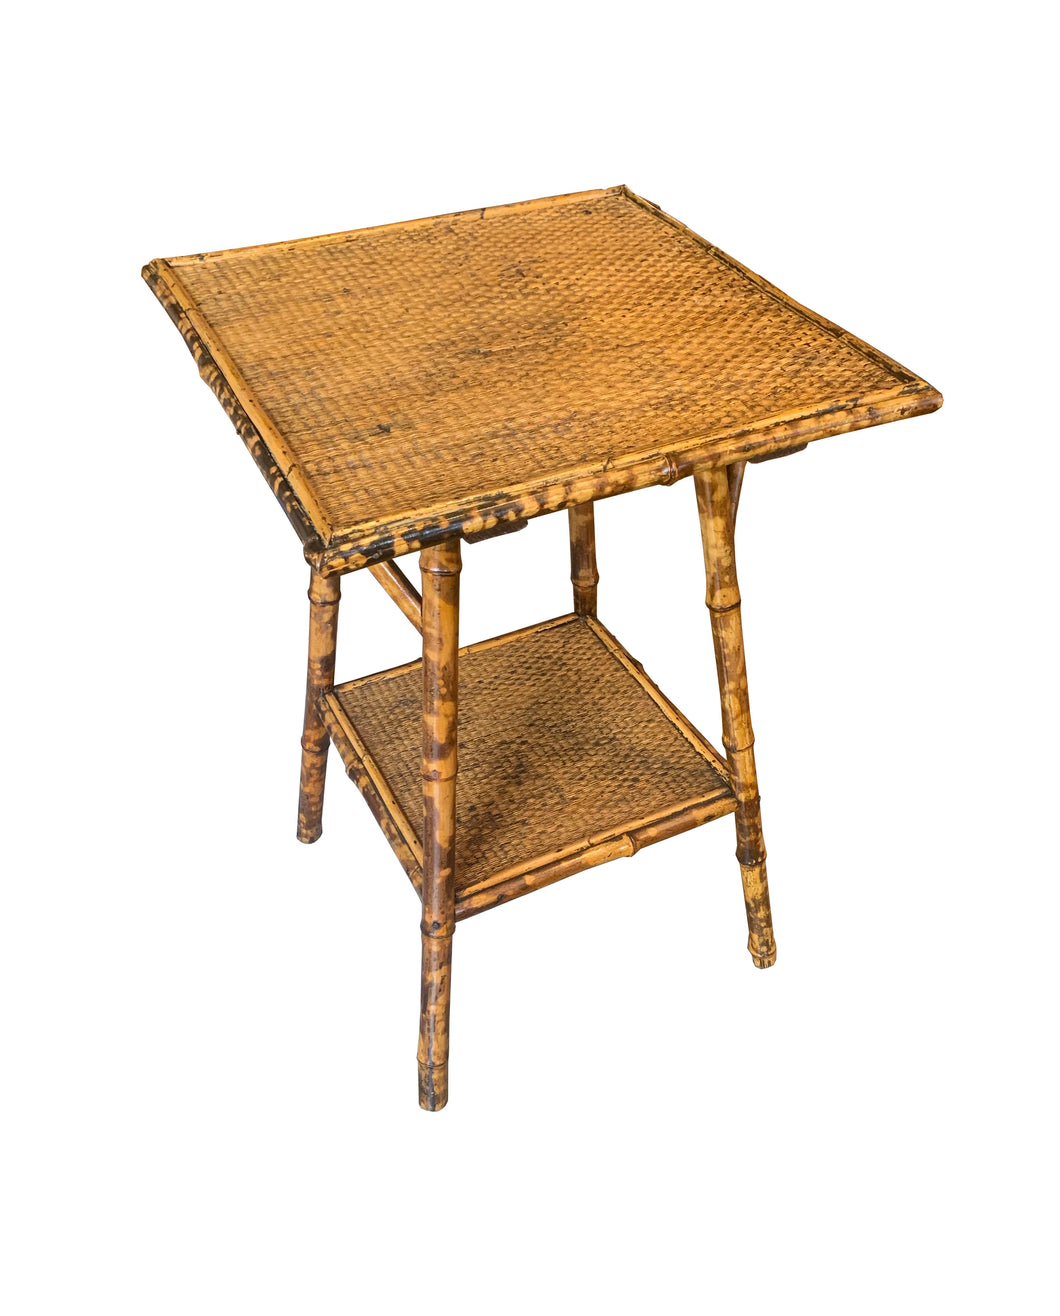 Square Bamboo Table with Shelf